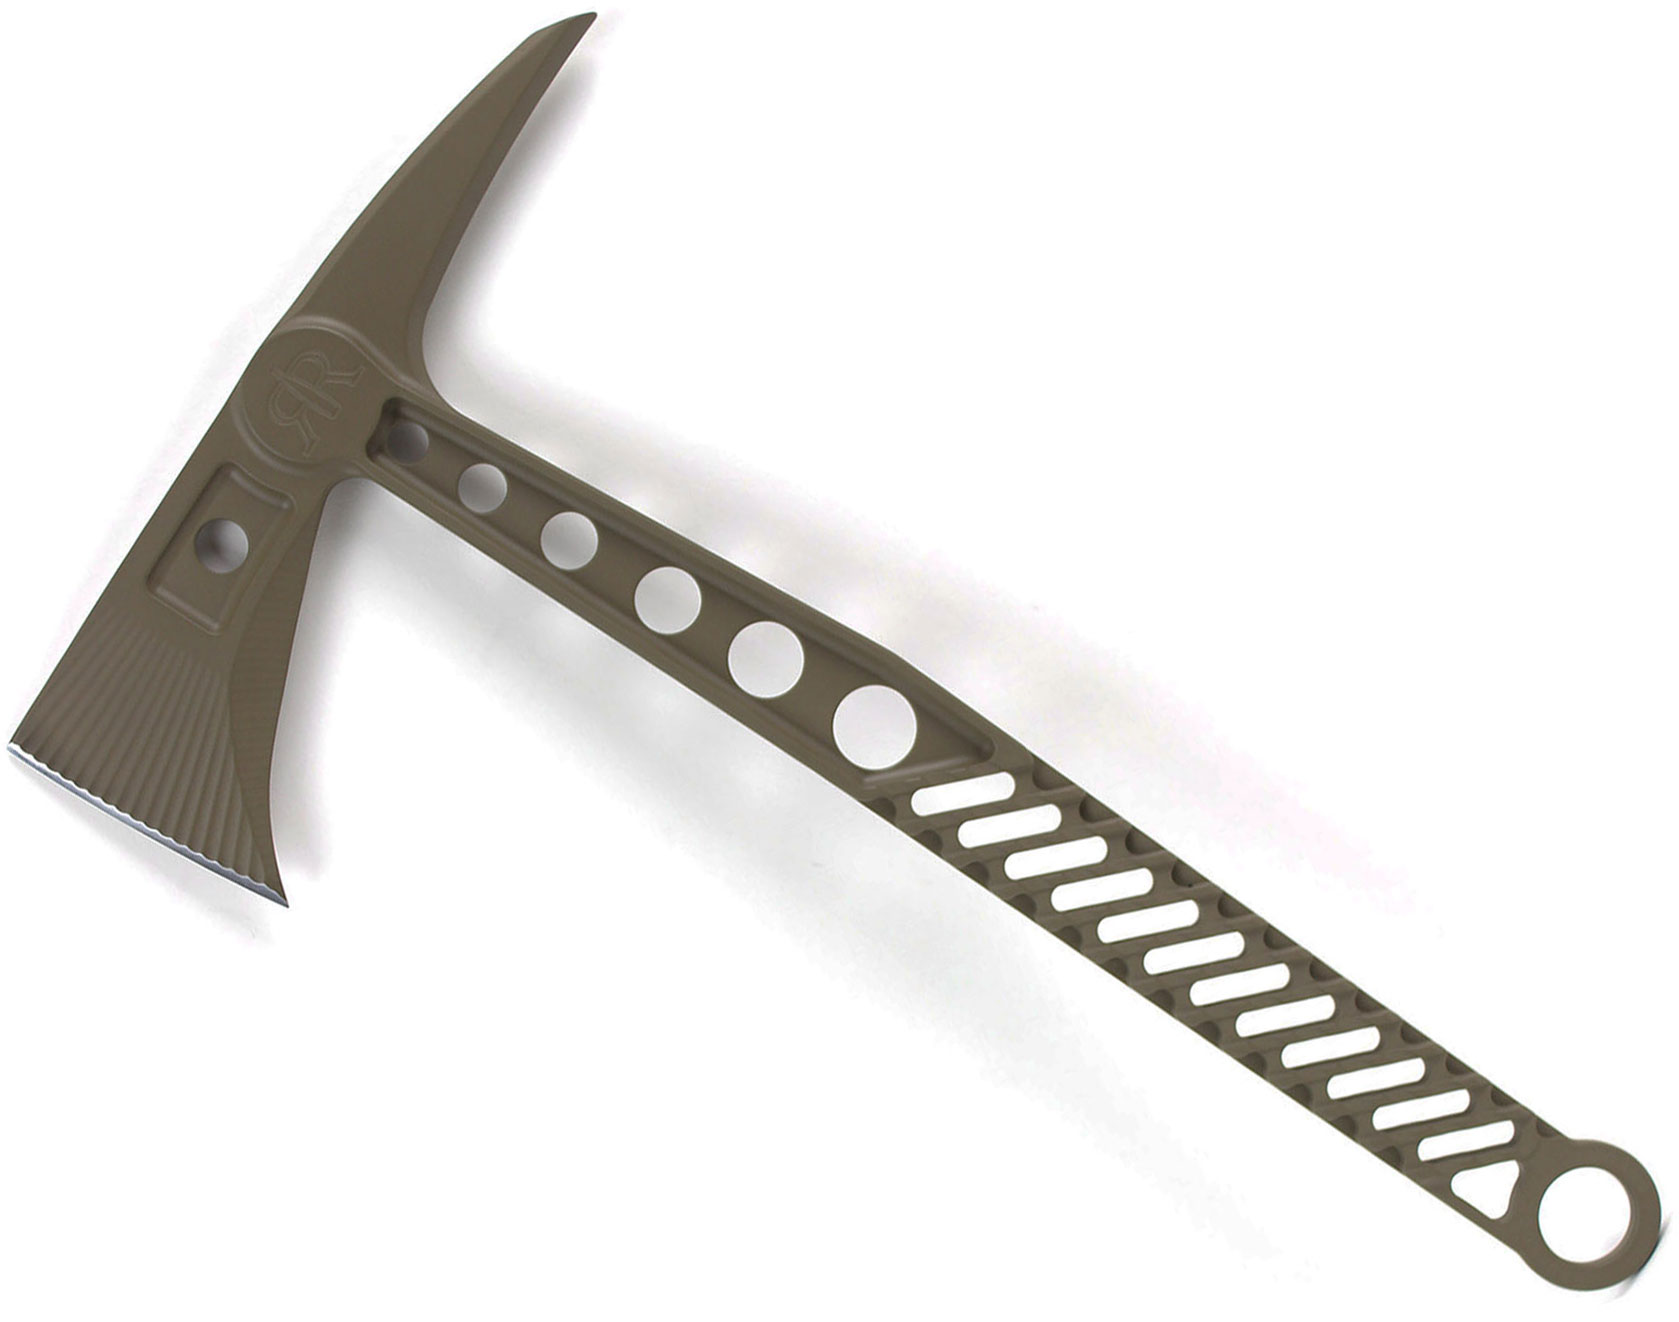 Red Rock Rifleworks MT-1 Monolithic Tactical Tomahawk, FDE Cerakote, 14.75 inch Overall